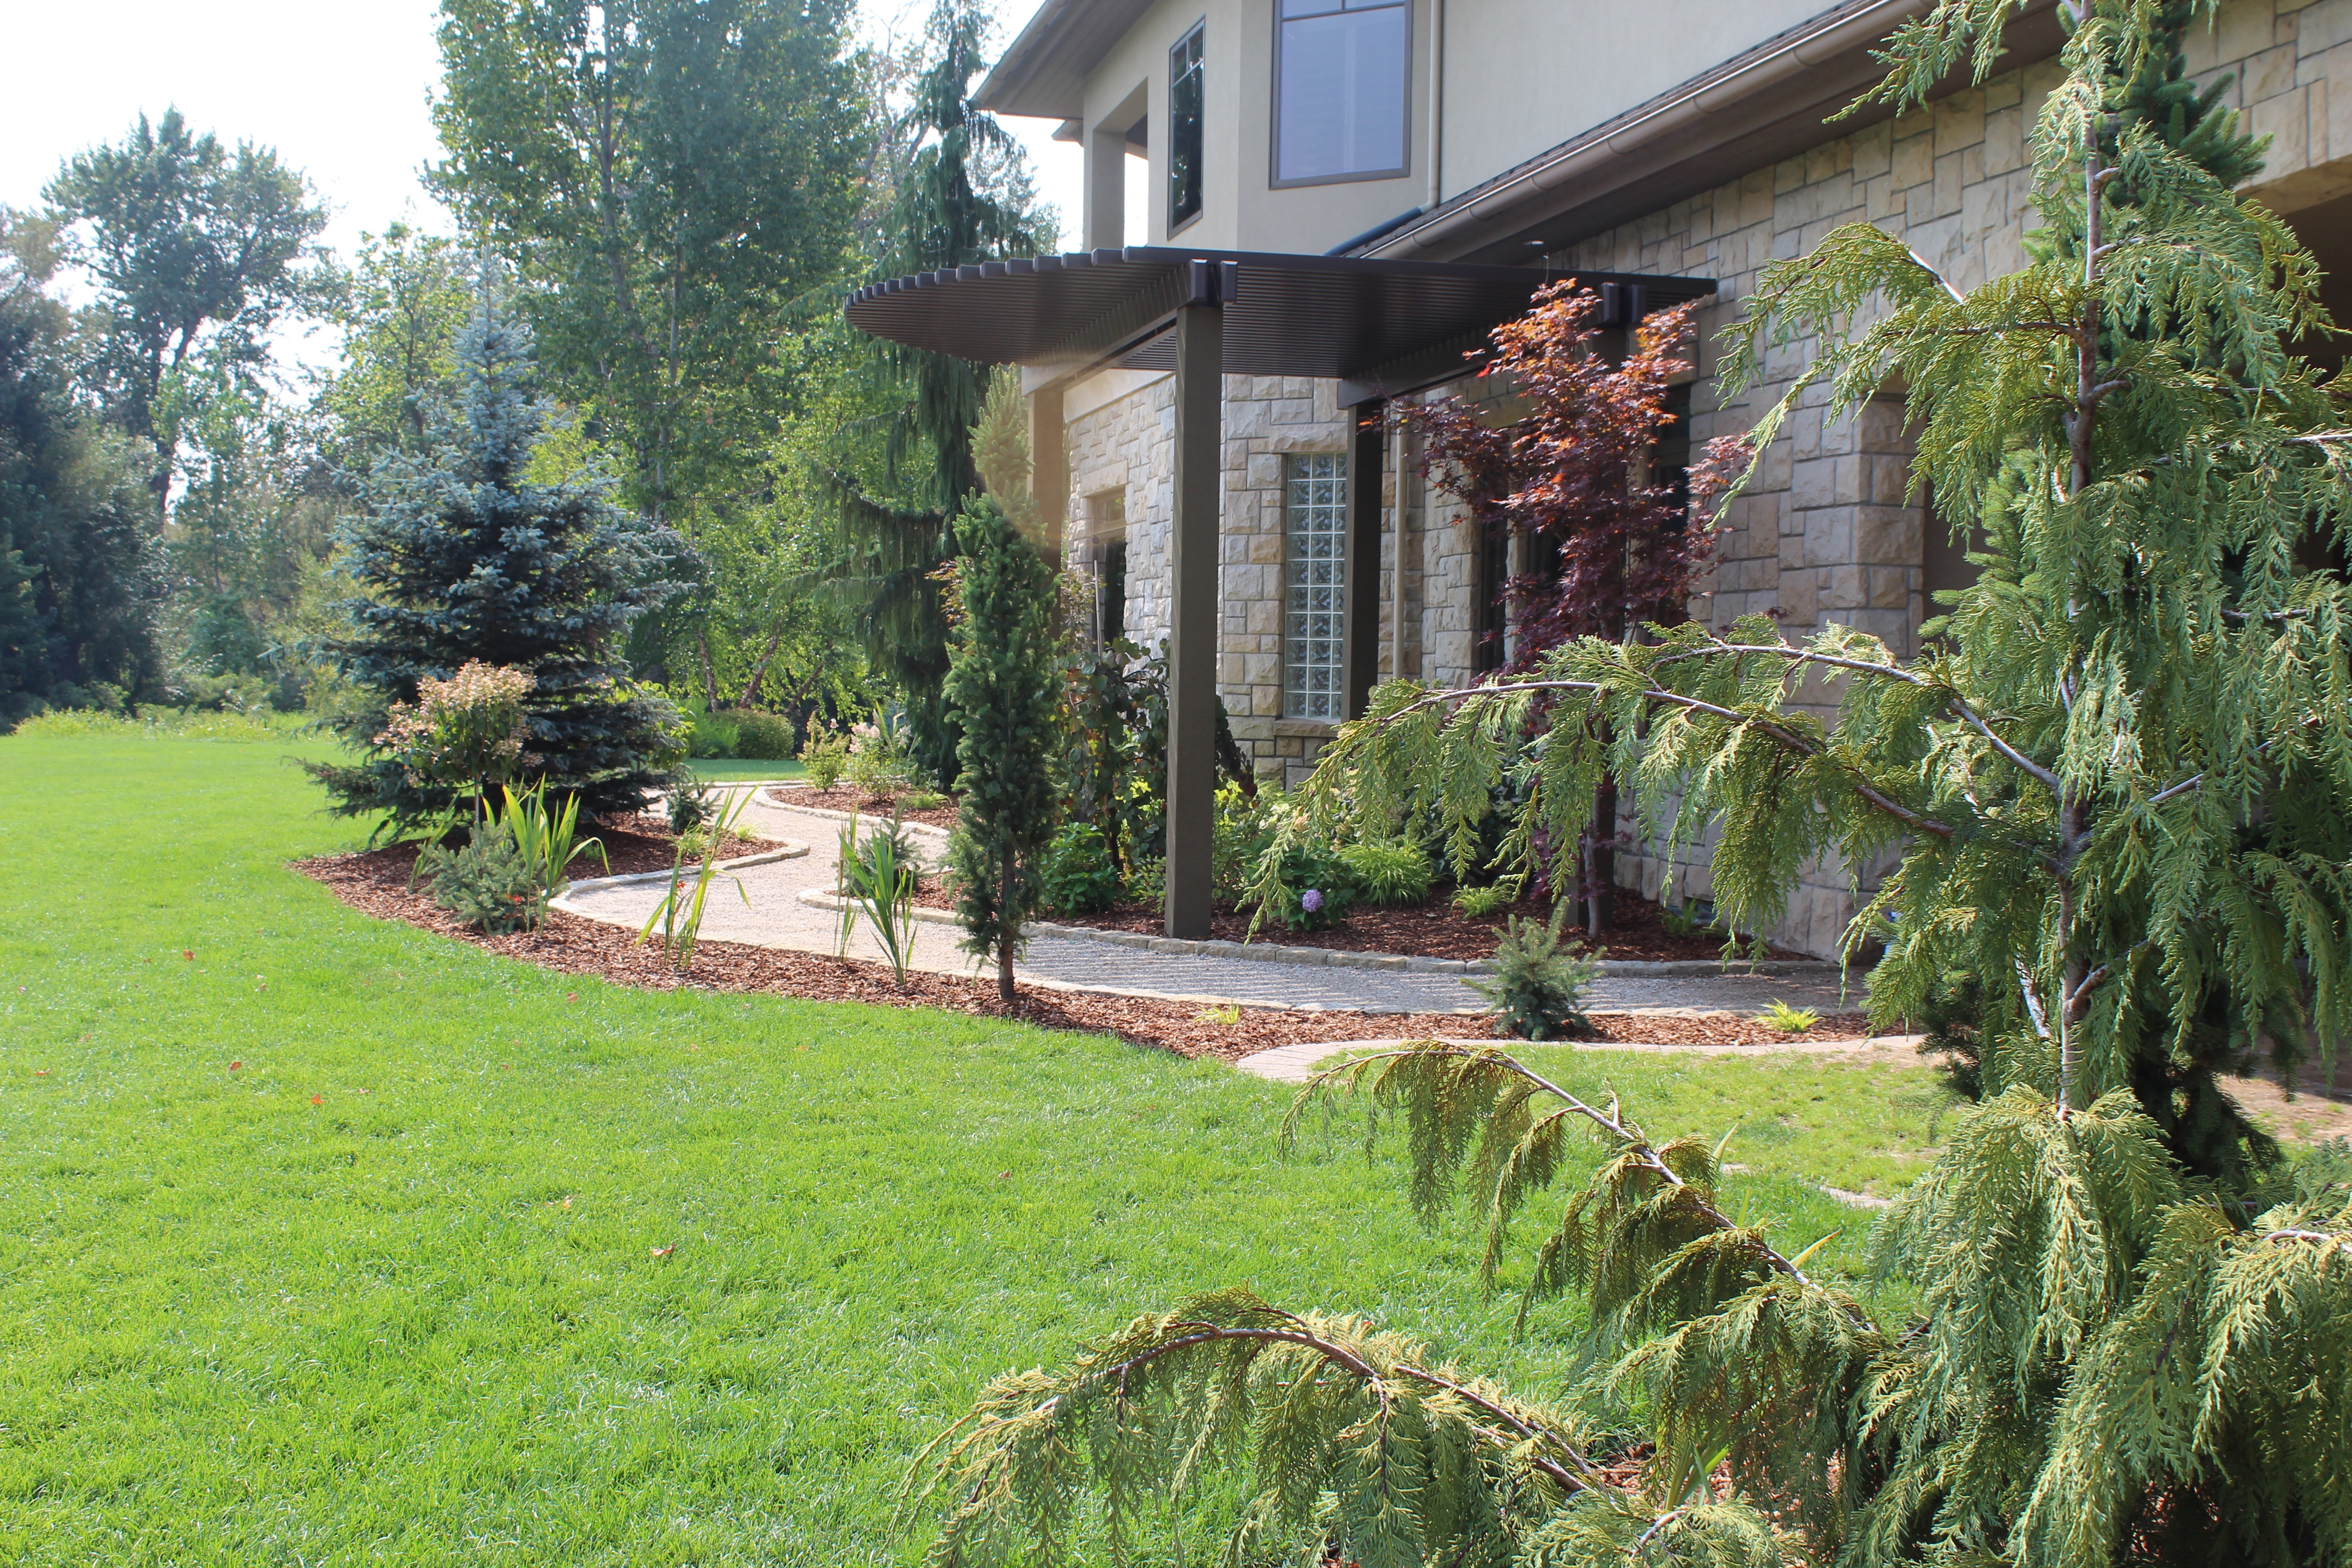 Sideyard Winding Paver Path | The Garden Artist Boise, ID